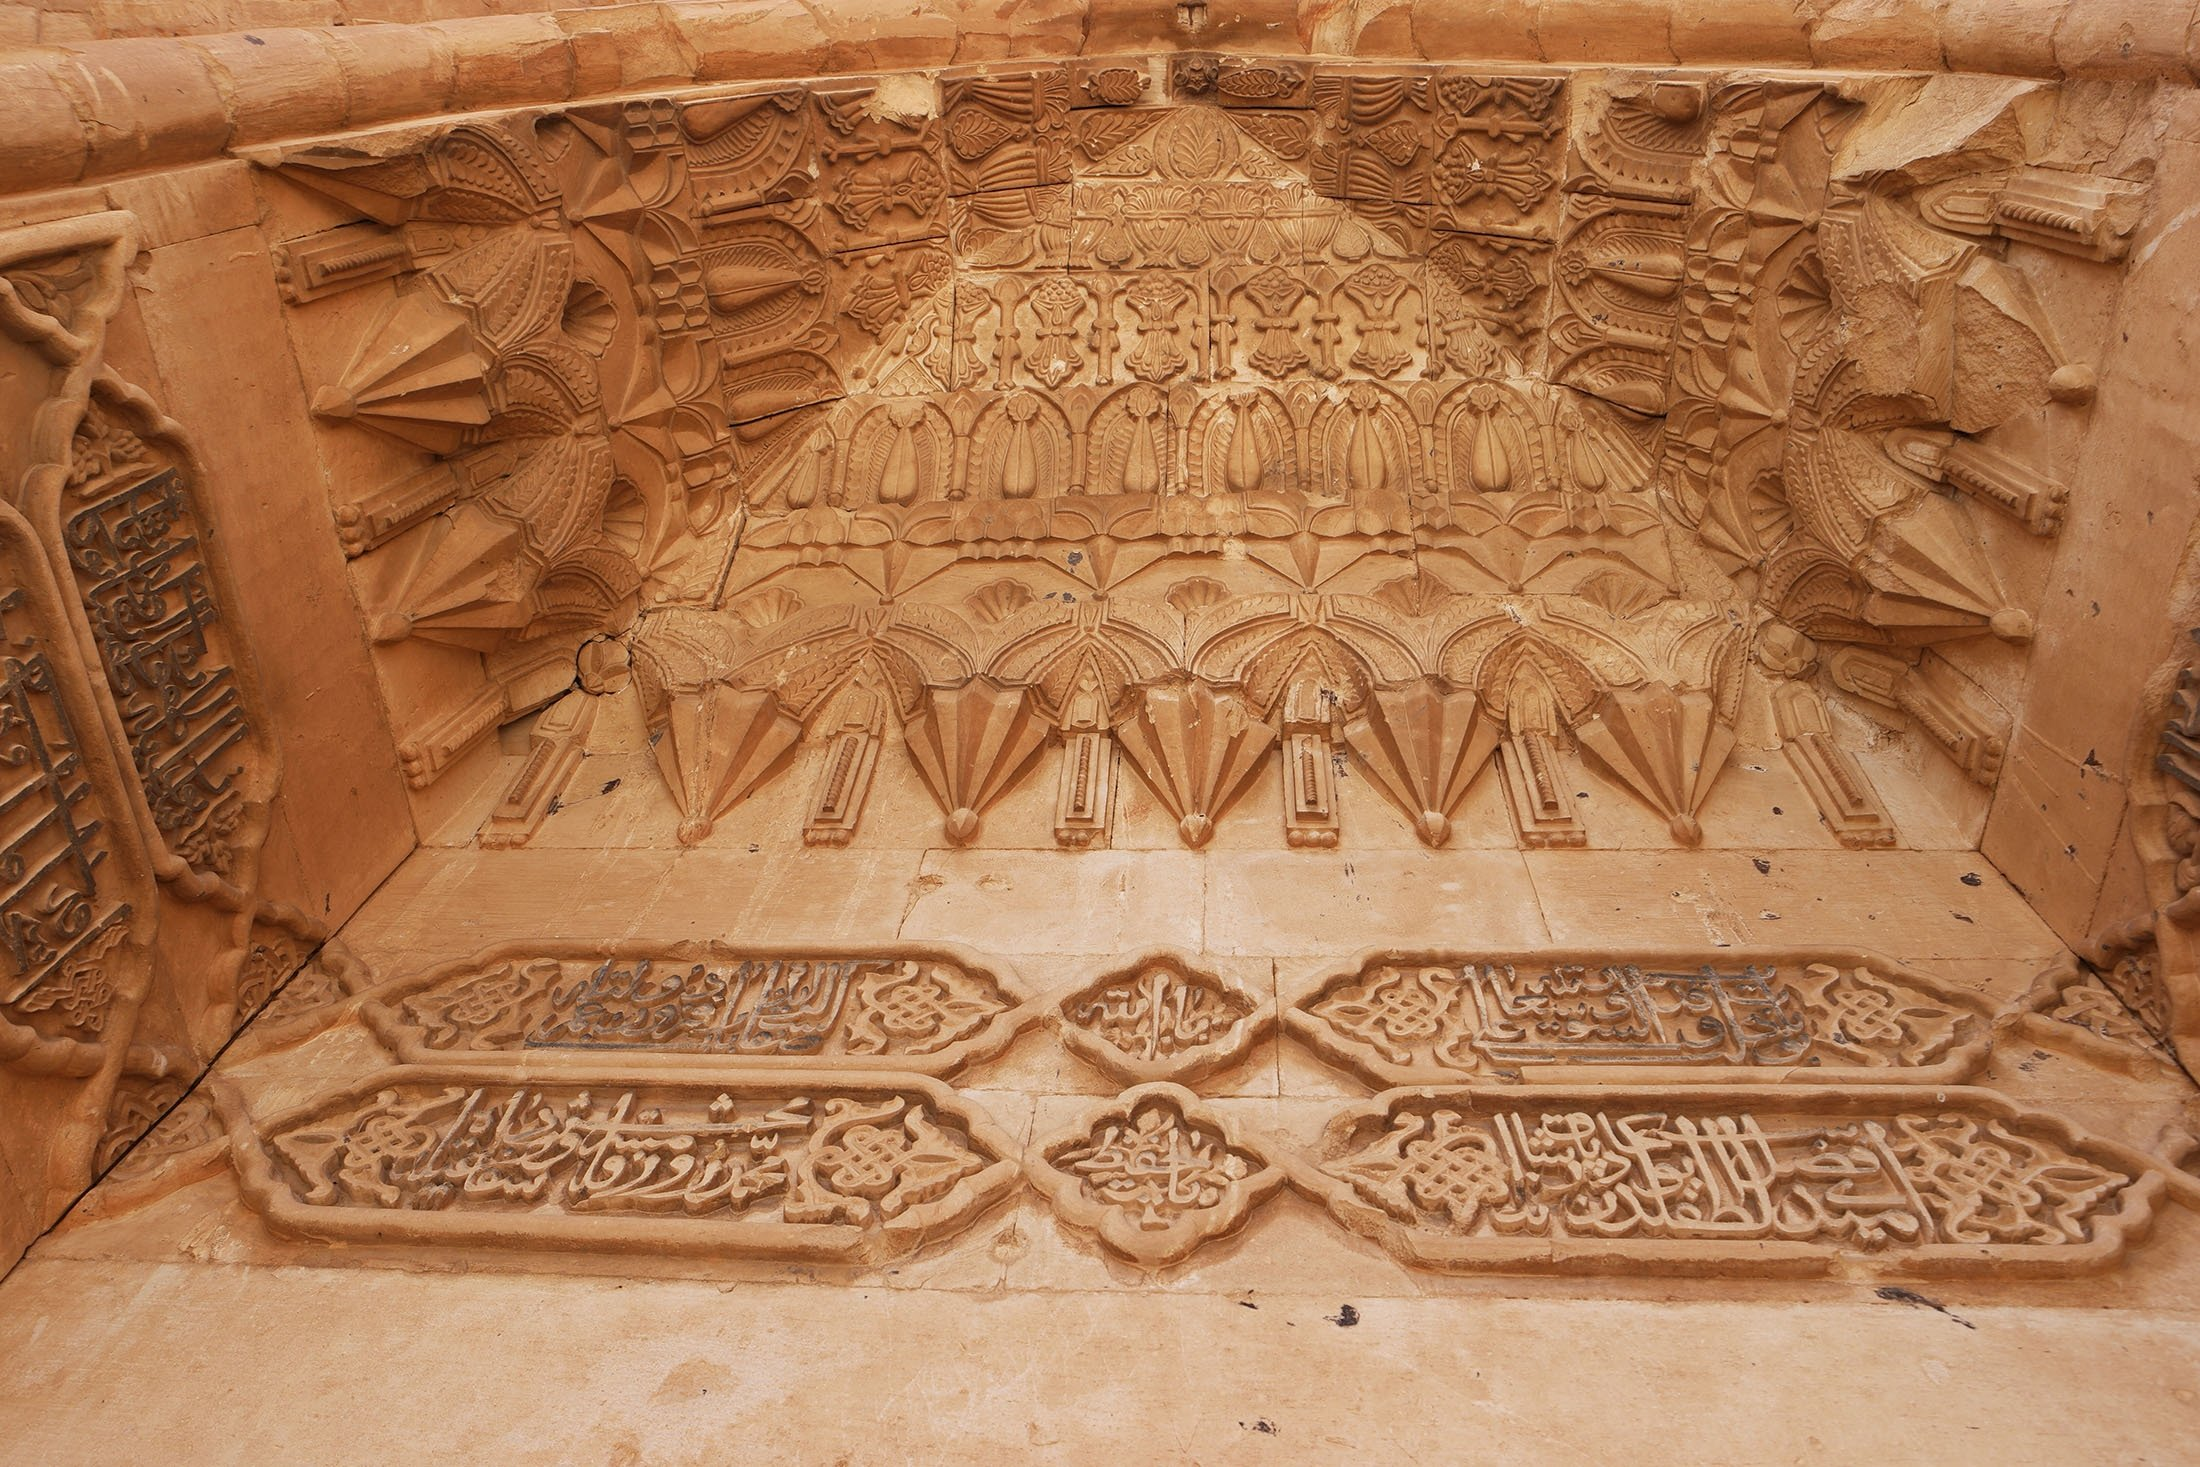 The walls of the Ishak Pasha Palace are decorated with Arabic inscriptions in the Doğubayazıt district of Ağrı, Turkey. (Shutterstock Photo)